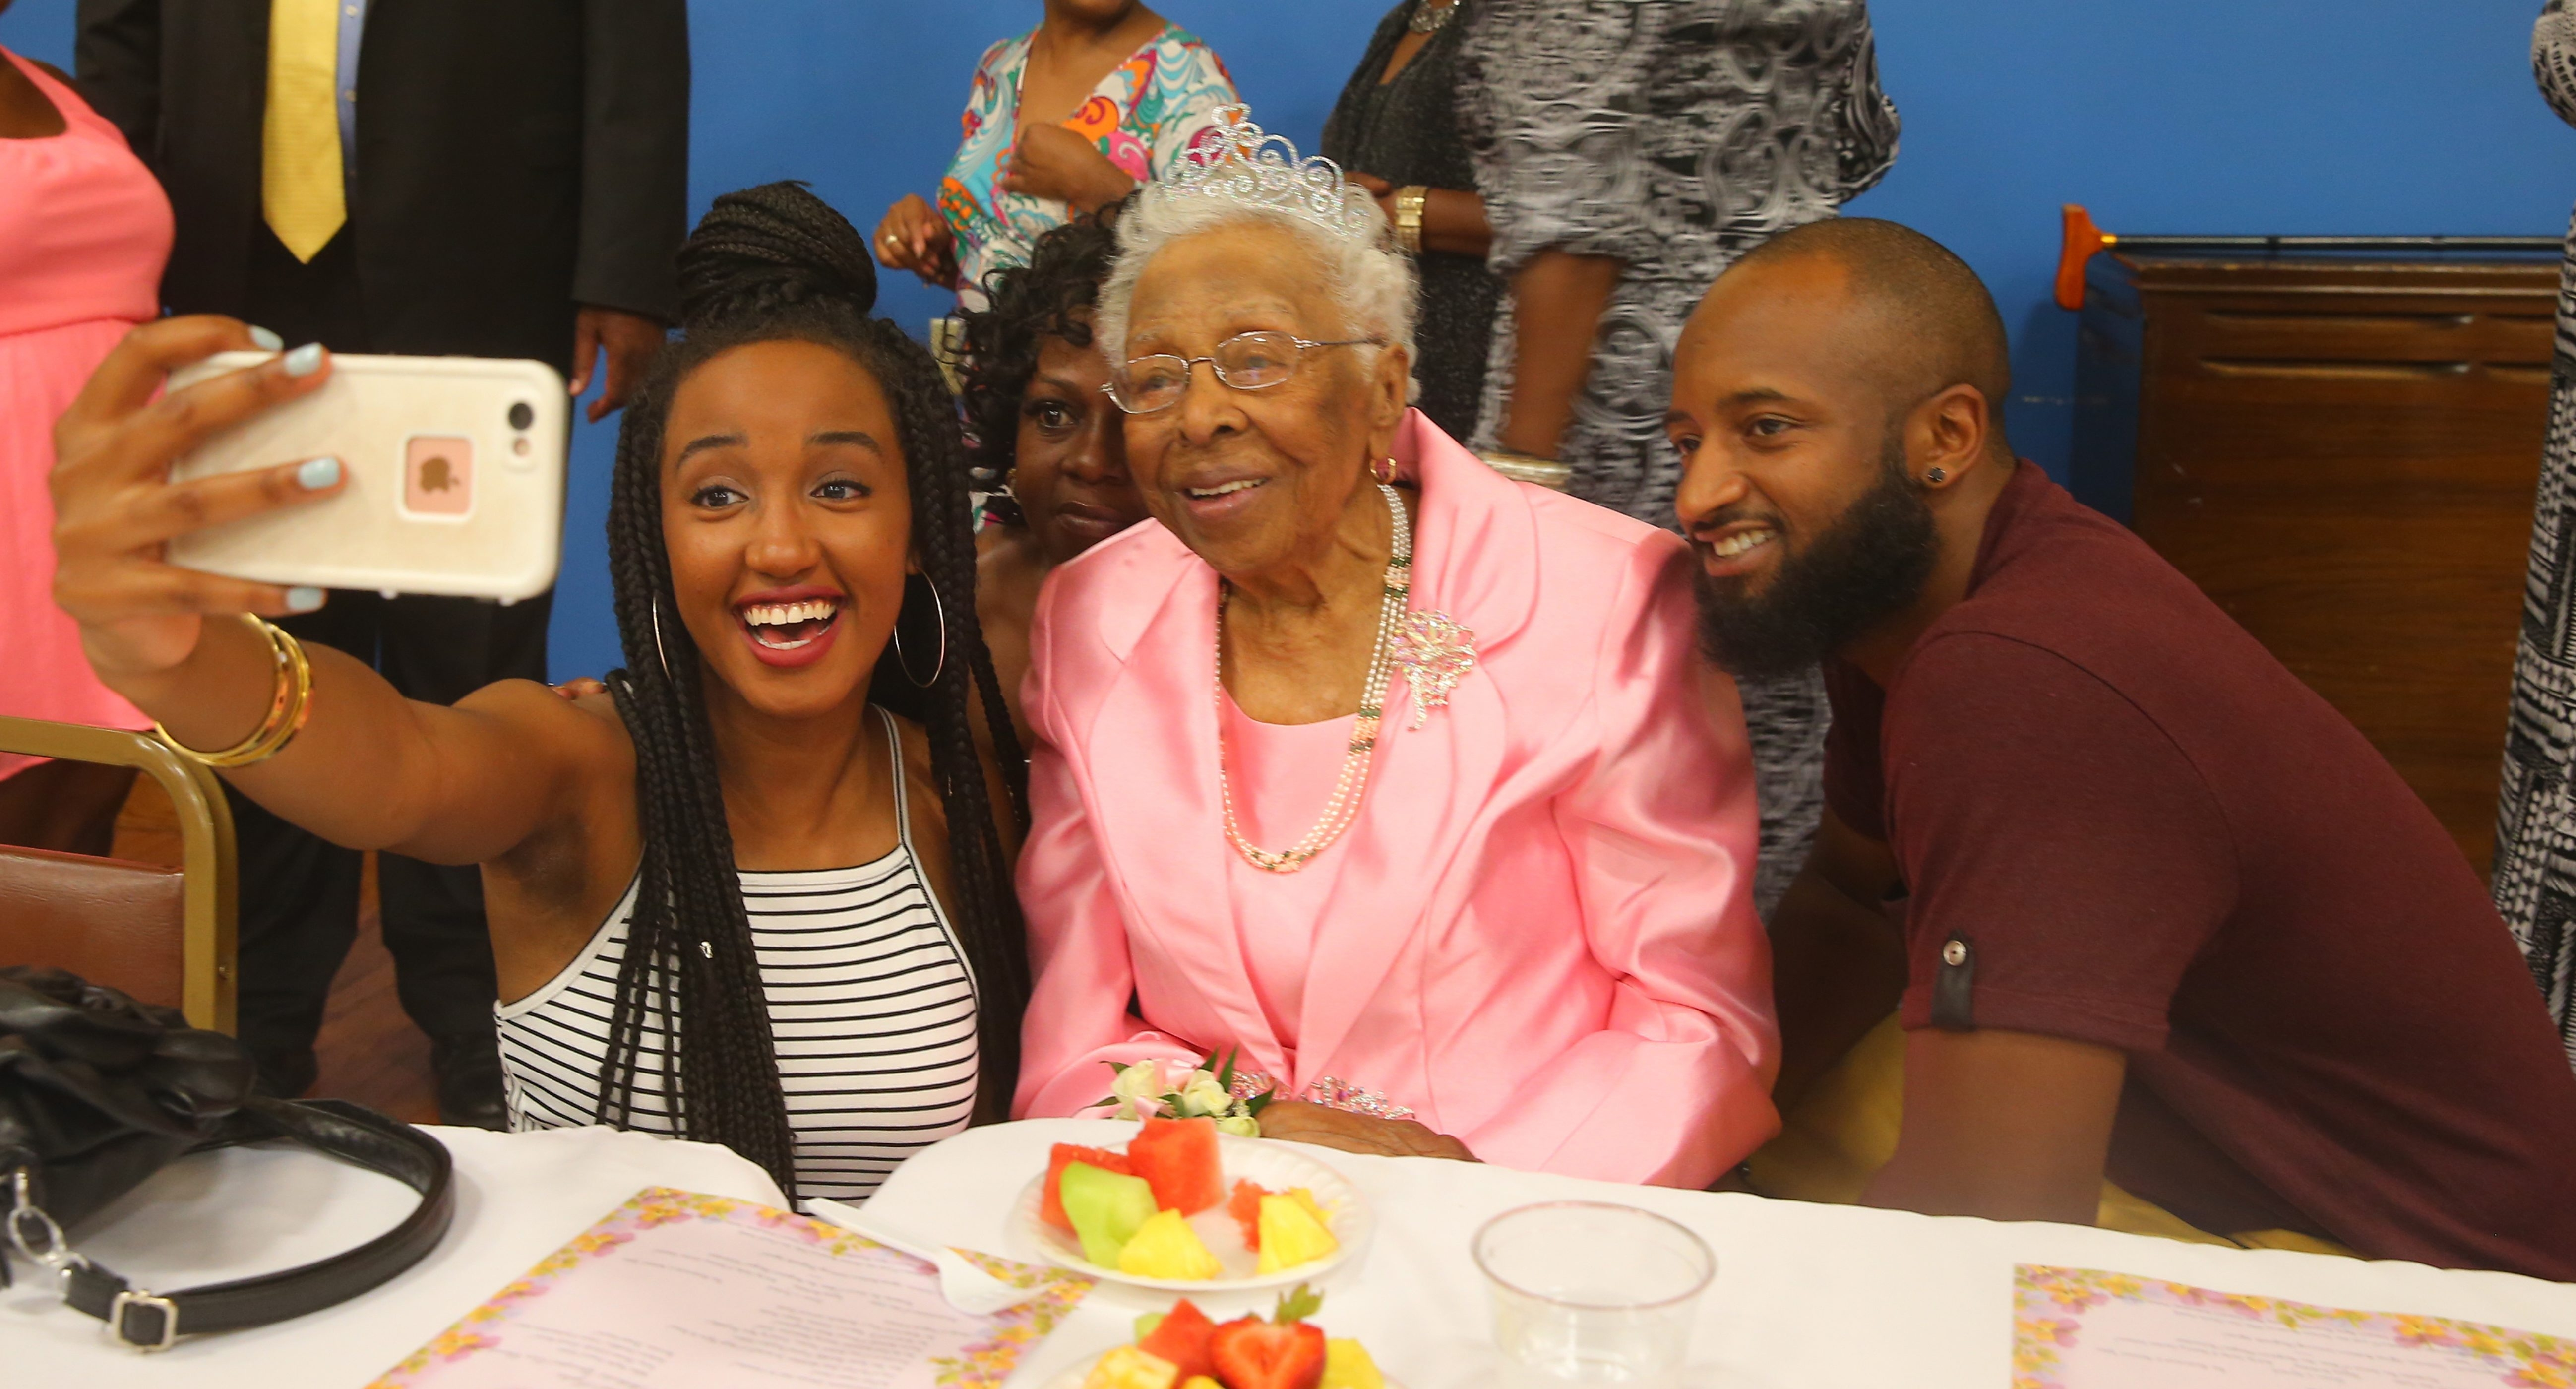 Margaret Richardson is the center of attention at her 100th birthday party as Chelsea Hall takes a selfie with Sonia Johnson, rear, and Tony Bryant at Durham Outreach Center.